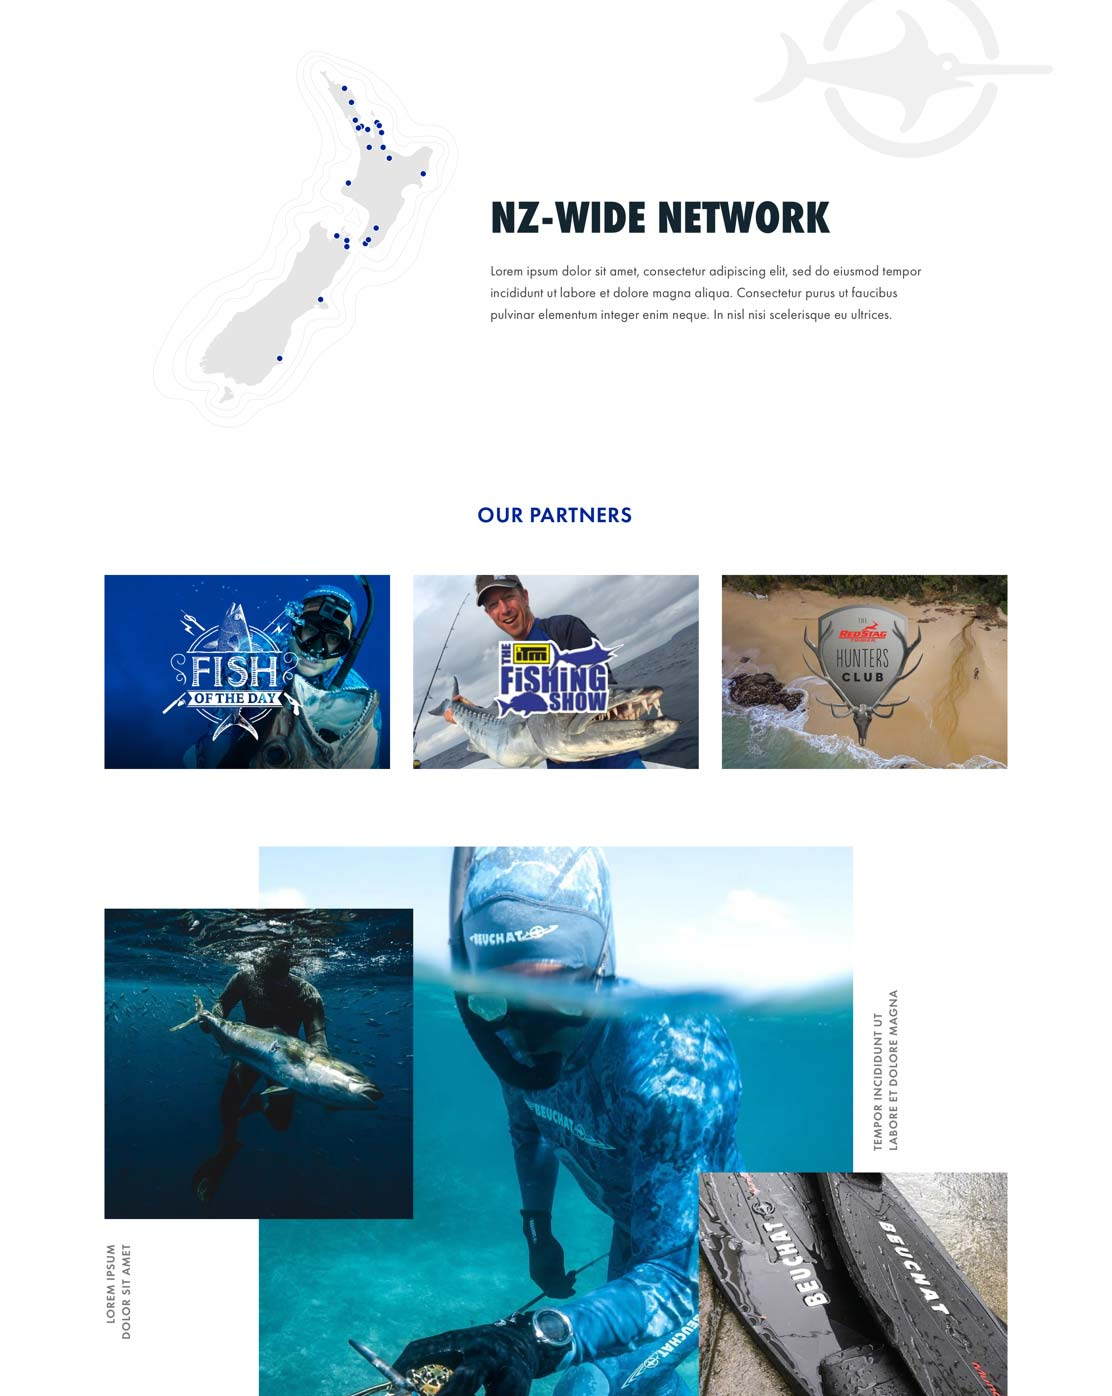 New look for New Zealand's premiere online skate and snow store